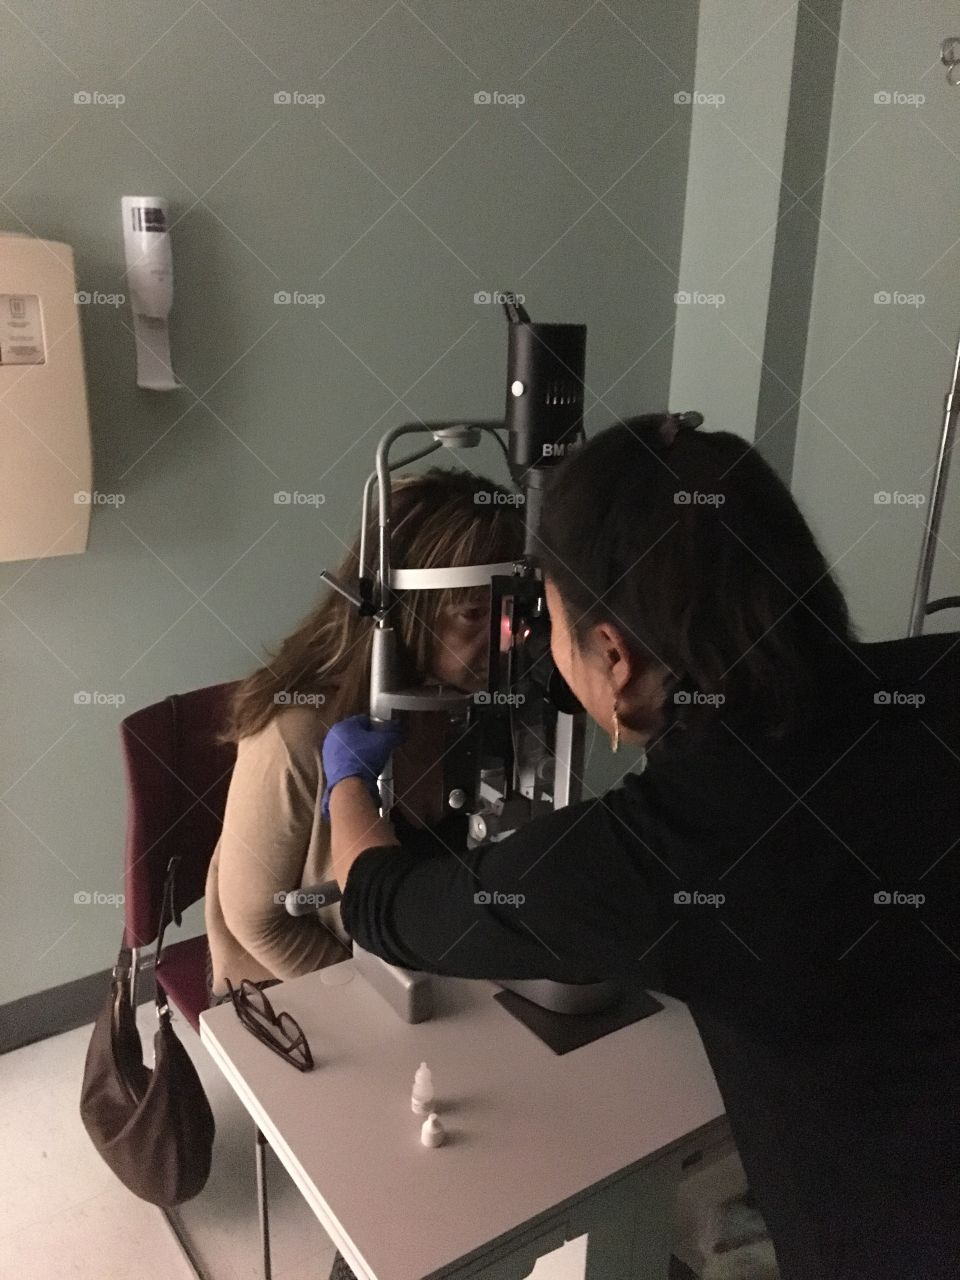 Visit to the eye doctor